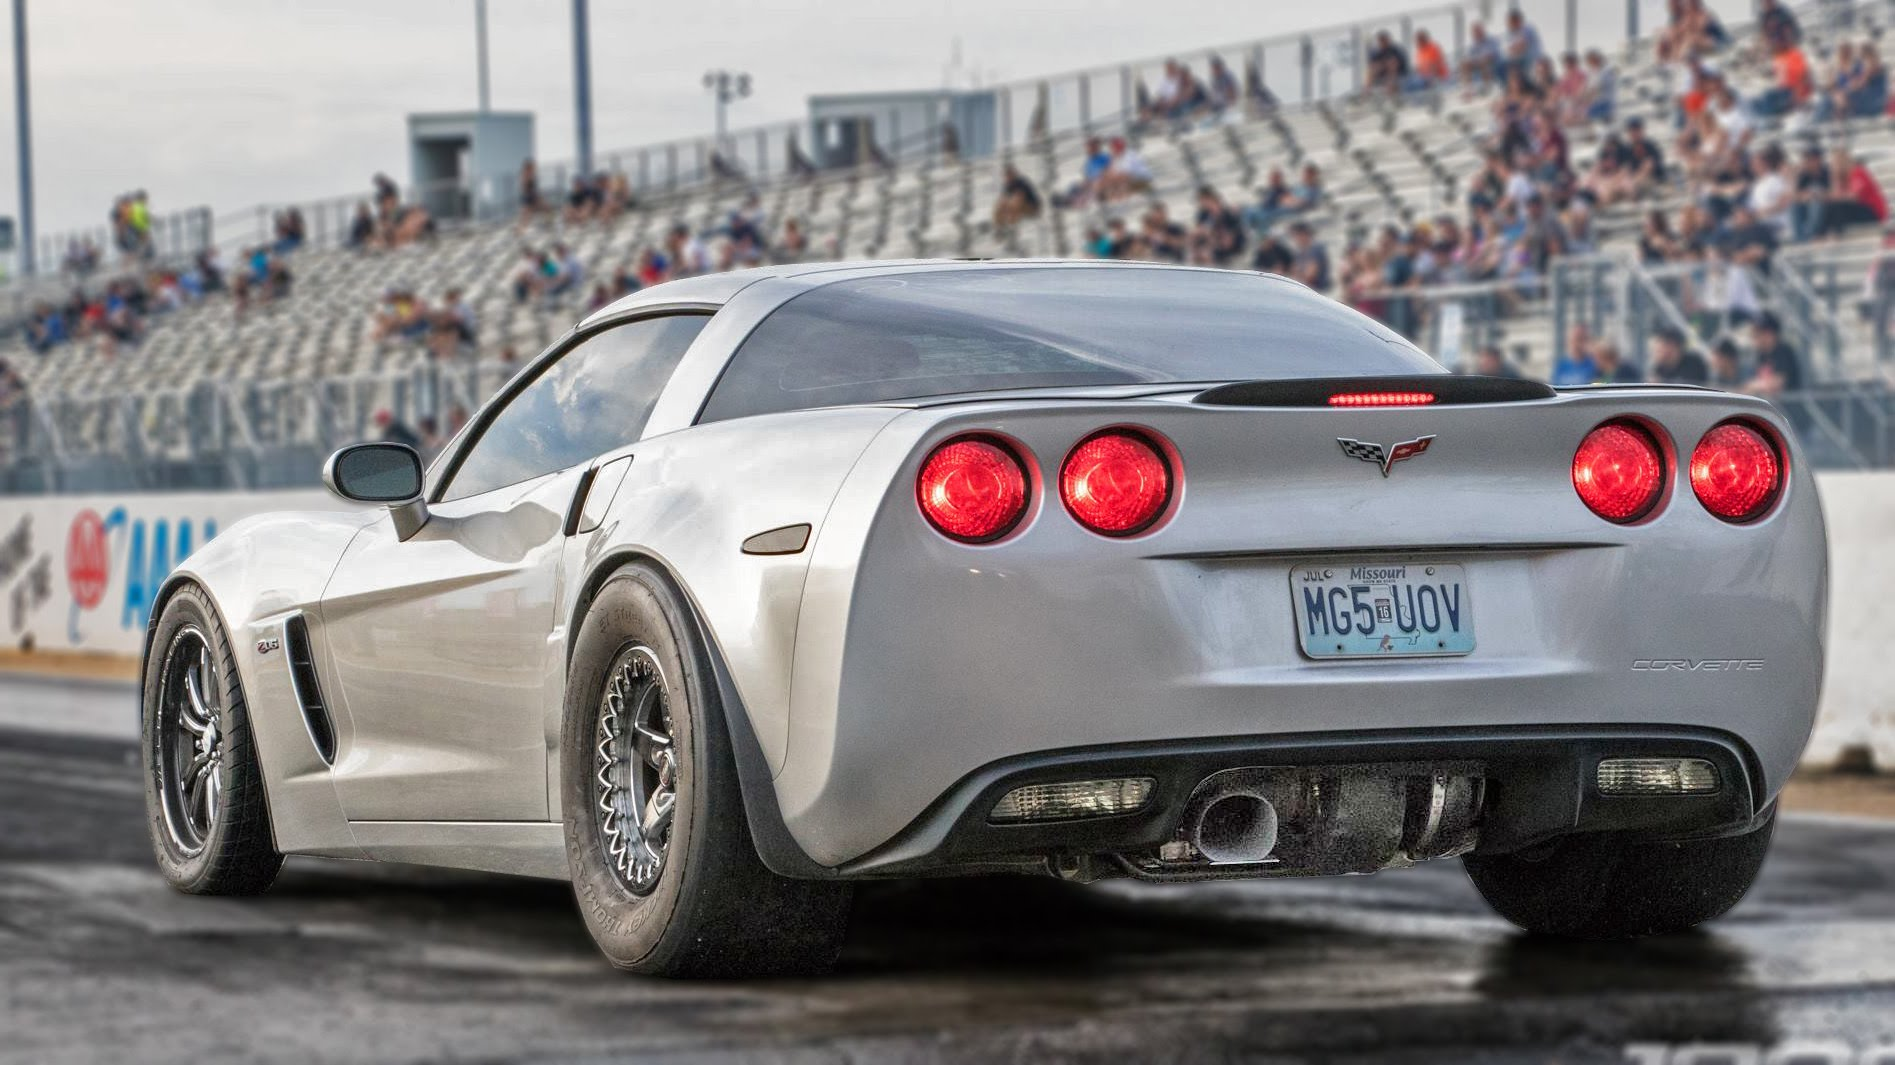 This Massive Rear Mounted Turbo Corvette Has Huge Potential Supercar Engine Diagram